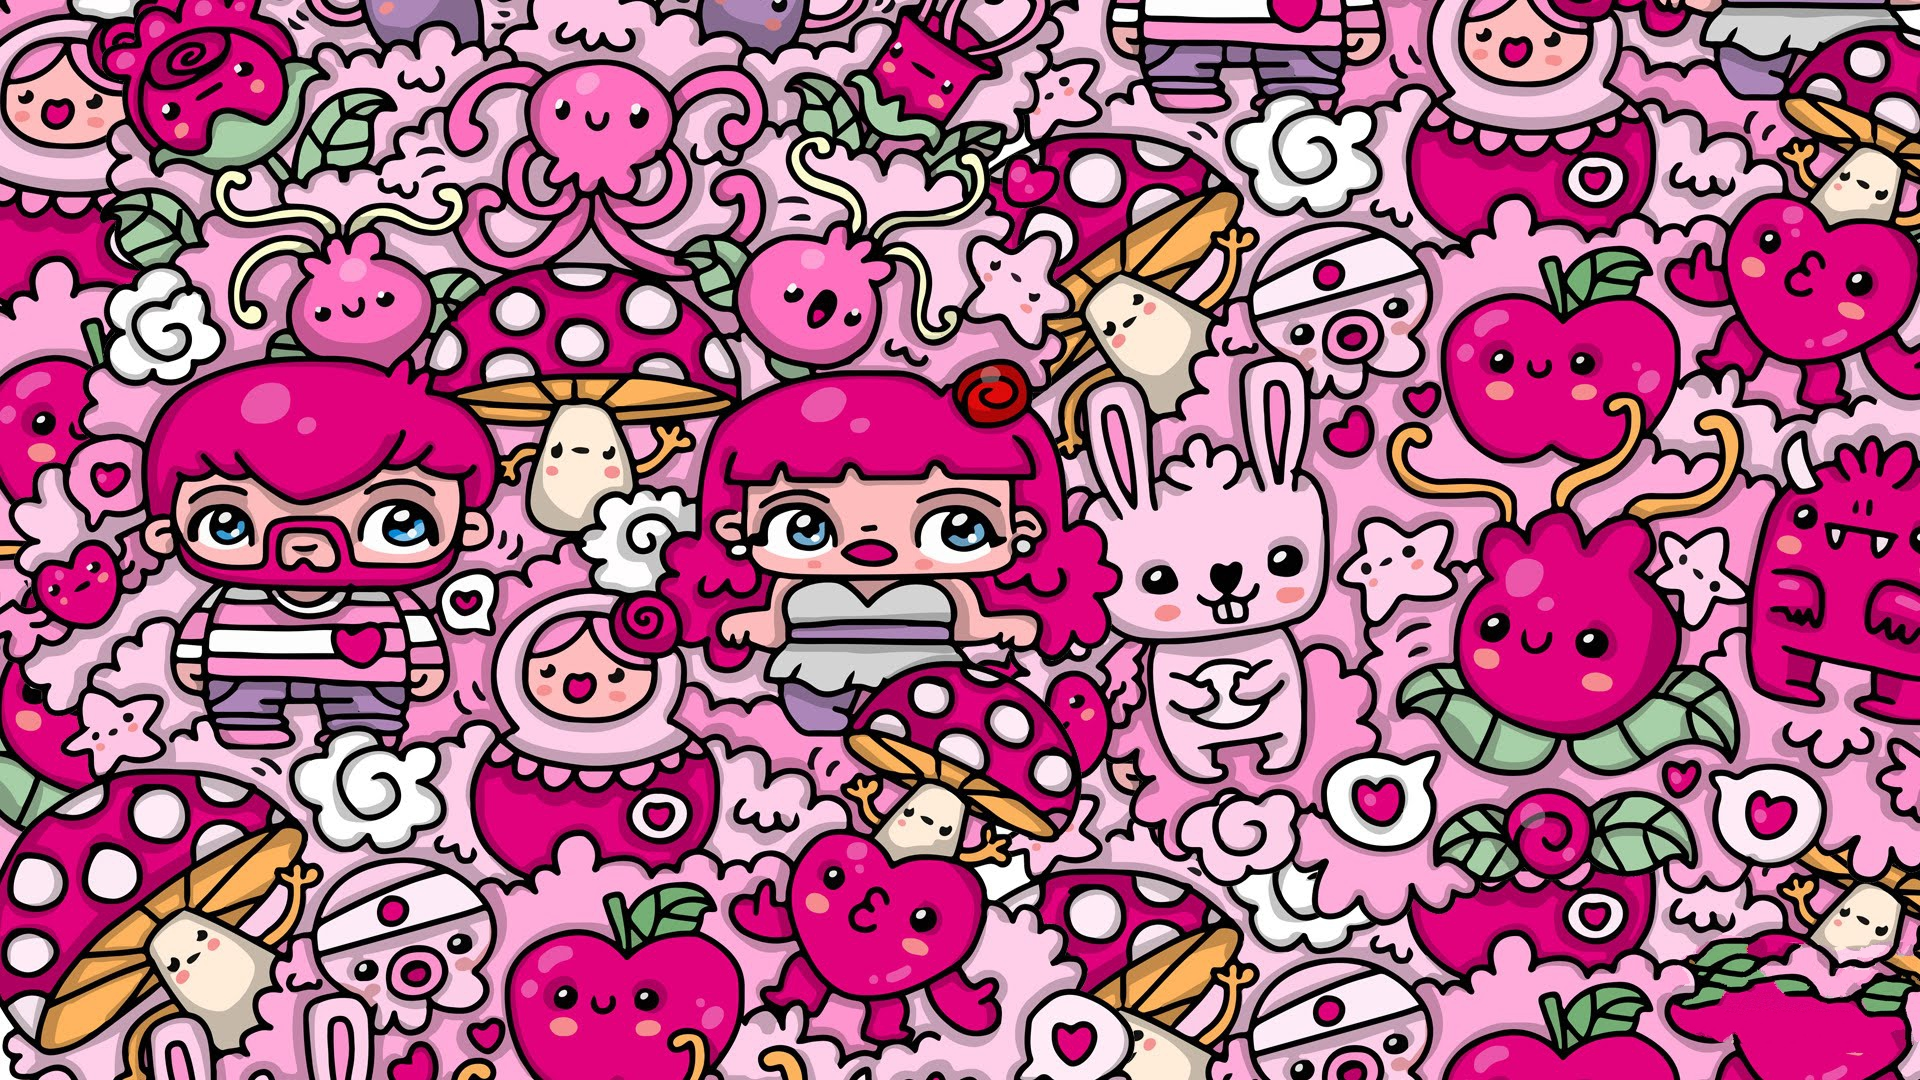 Cute Wallpapers Cocoppa Free Artsy Backgrounds Download Pixelstalk Net